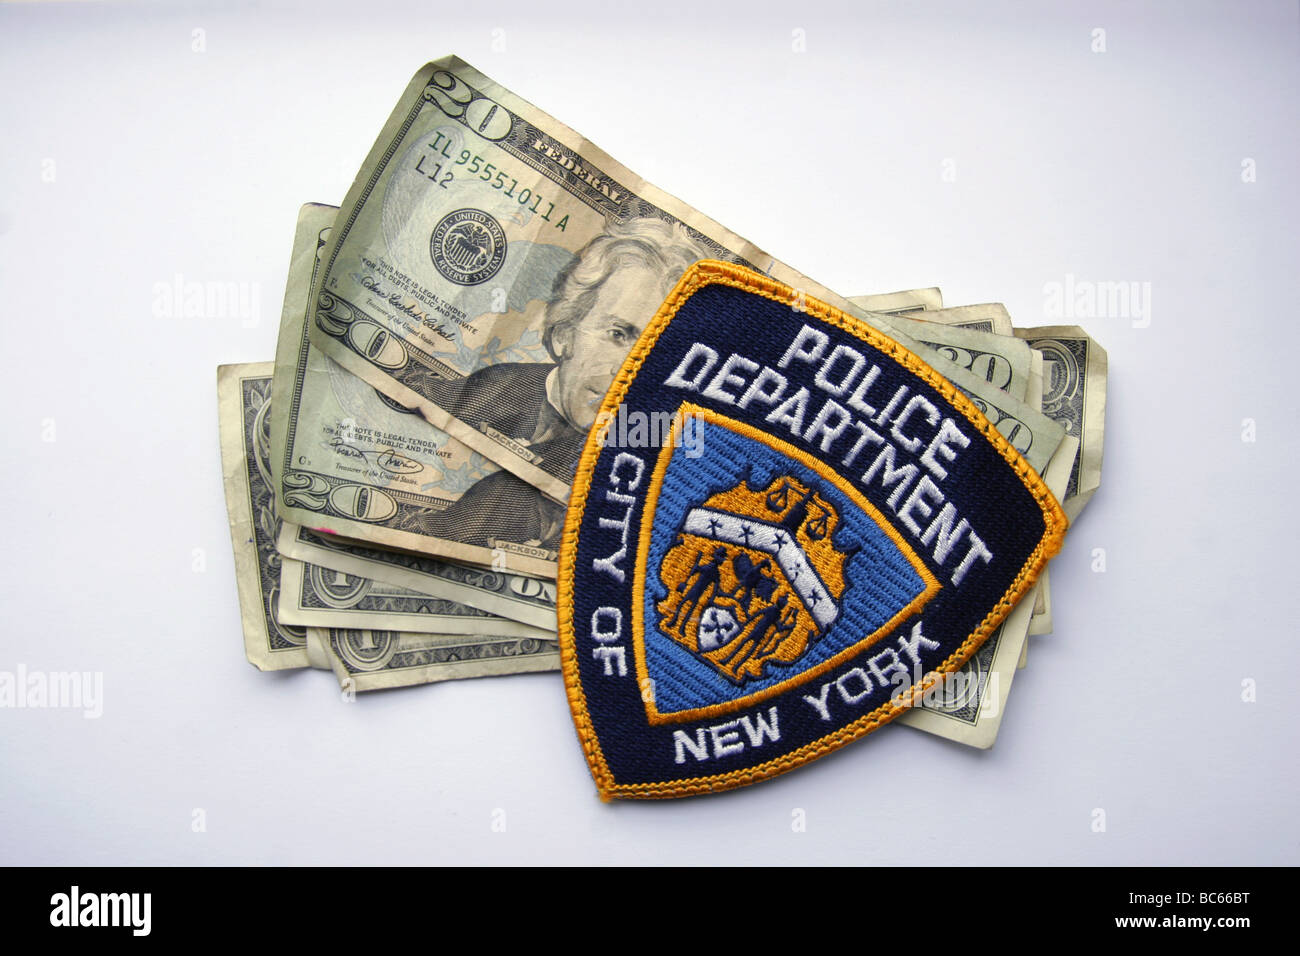 Police patch of the NYPD and American dollar bills - Stock Image